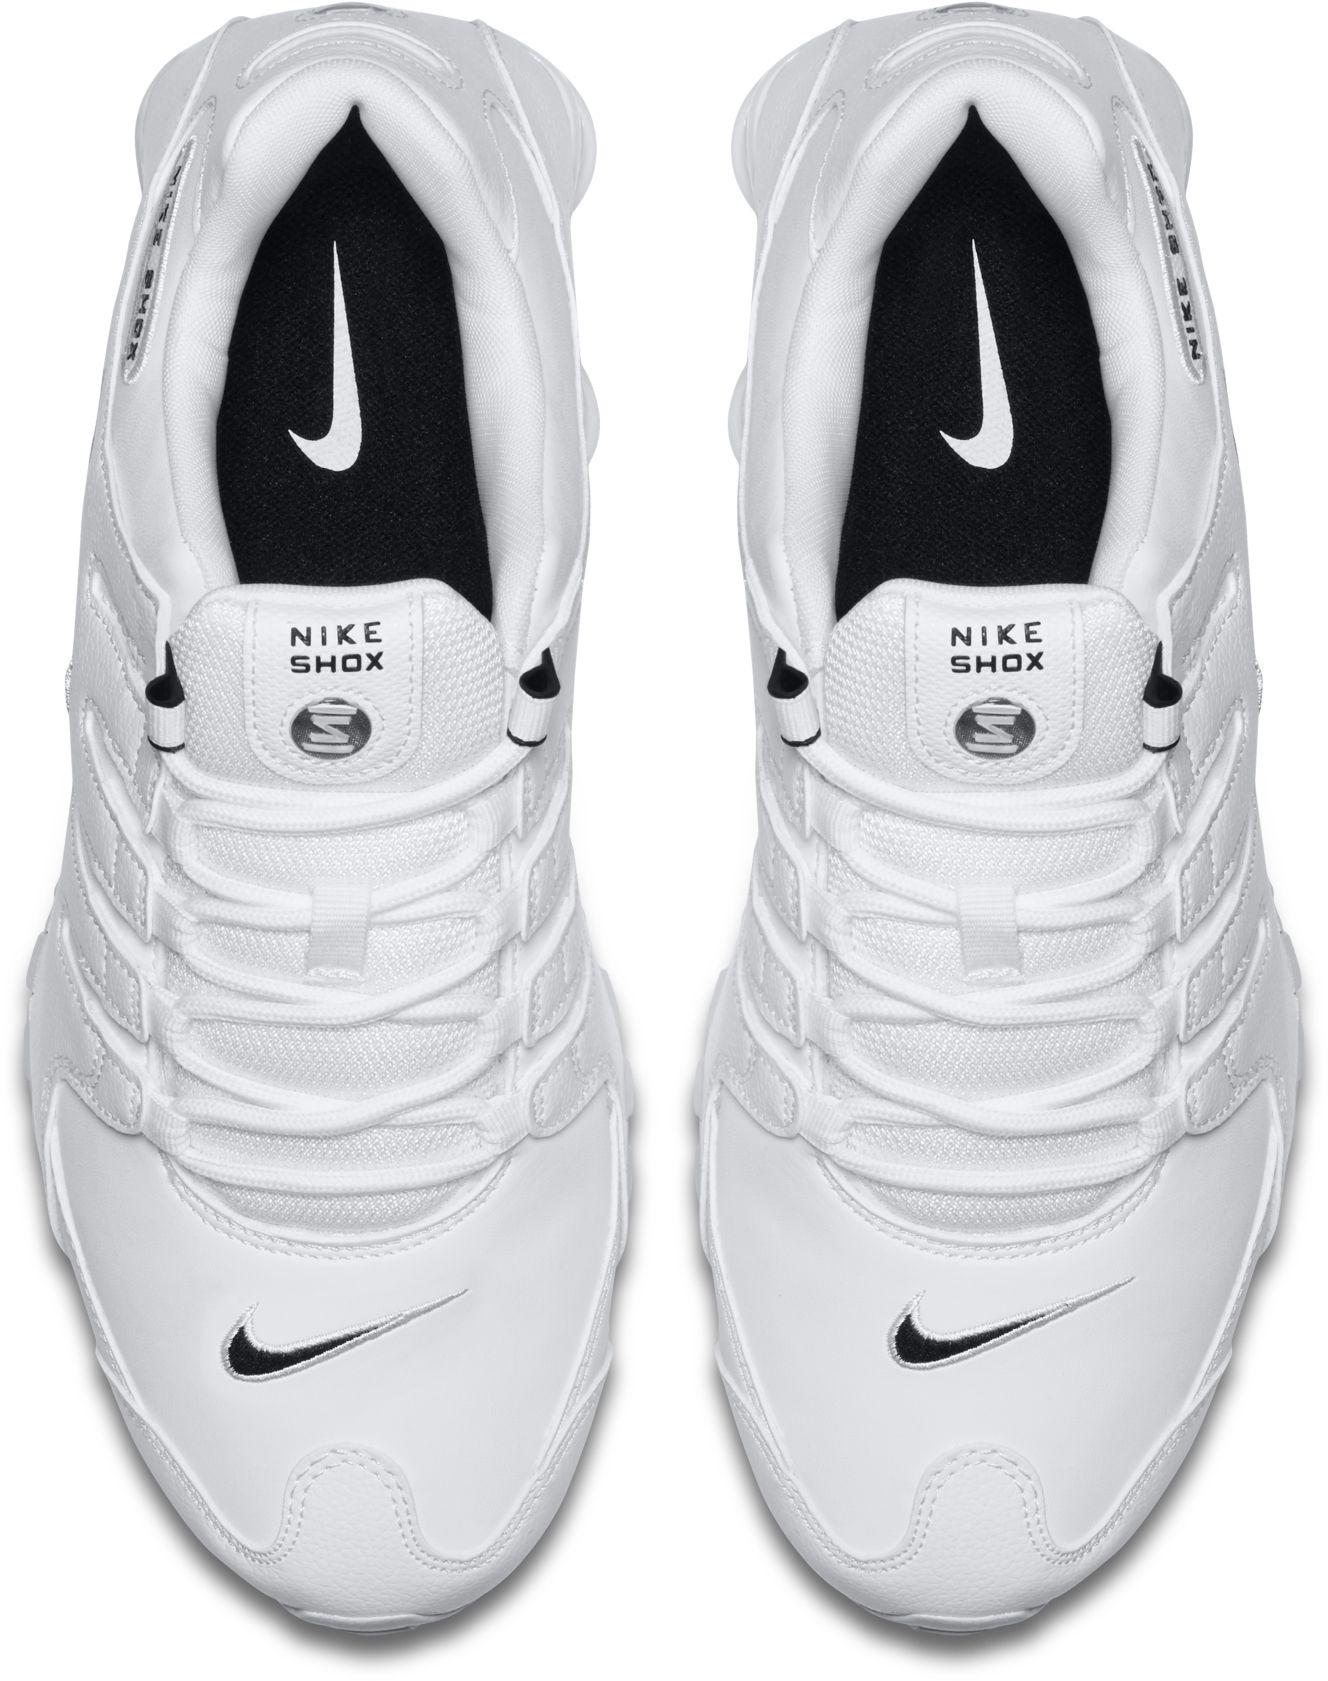 0353090aa68 Lyst - Nike Shox Nz Shoes in White for Men